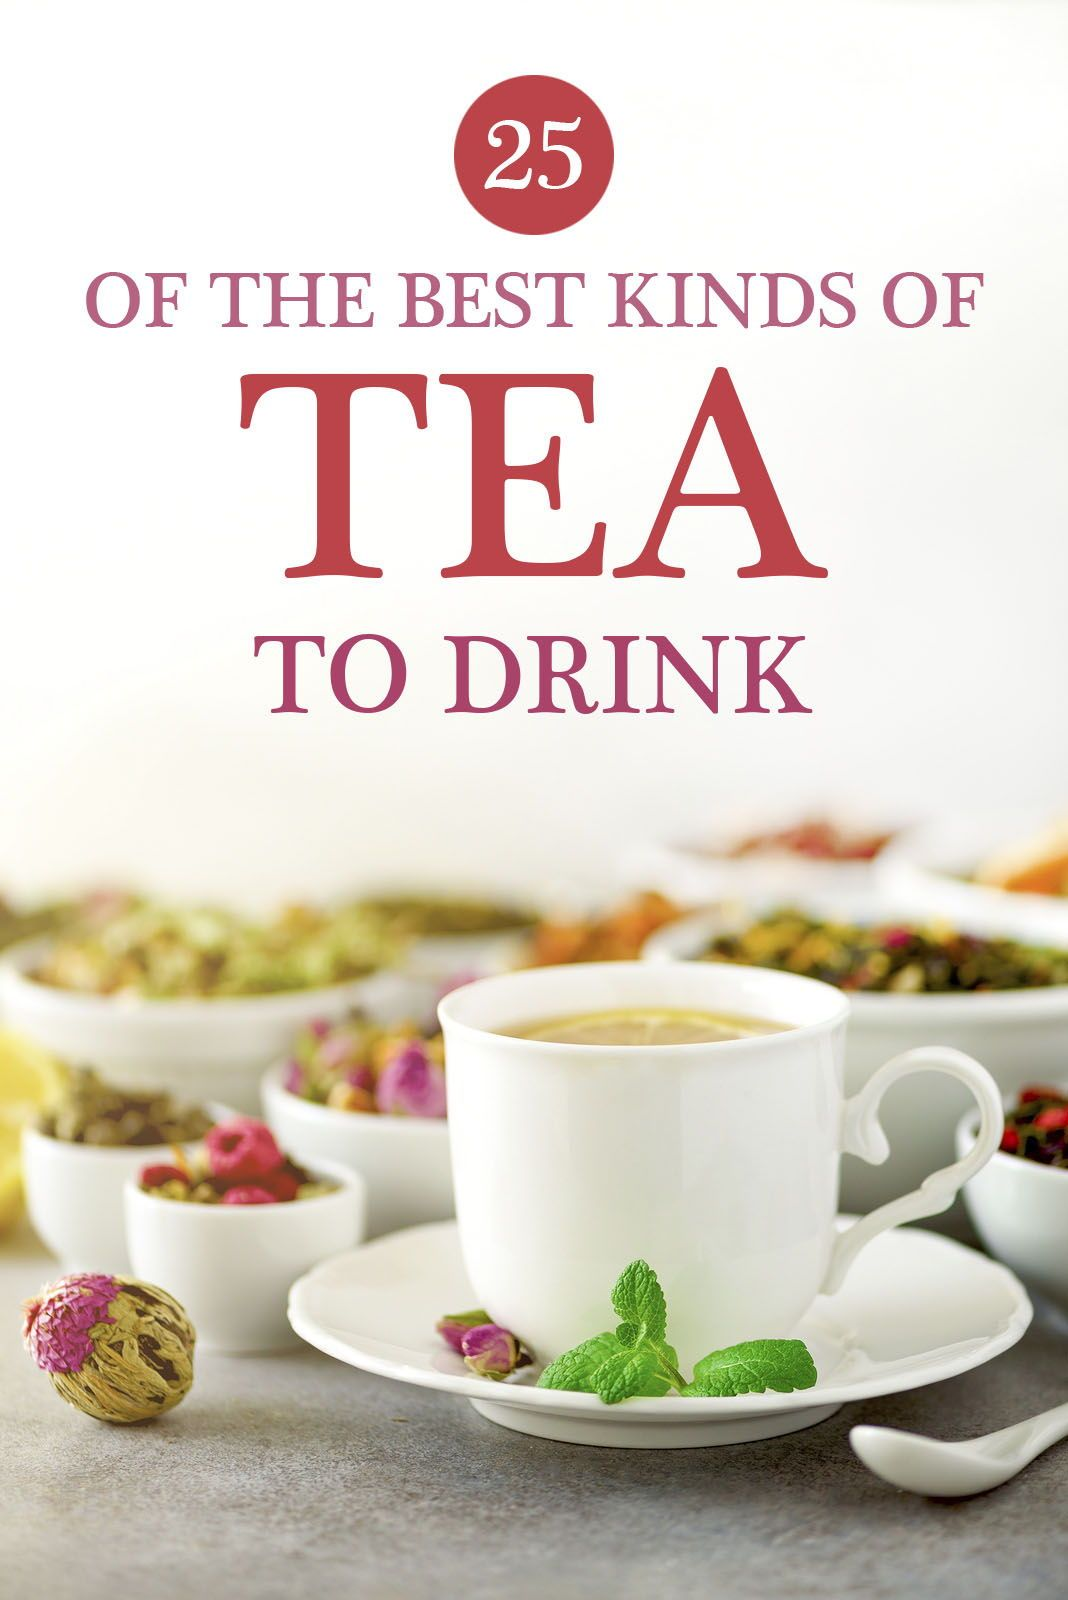 26 Types of Tea Profiles, Potential Benefits, Side